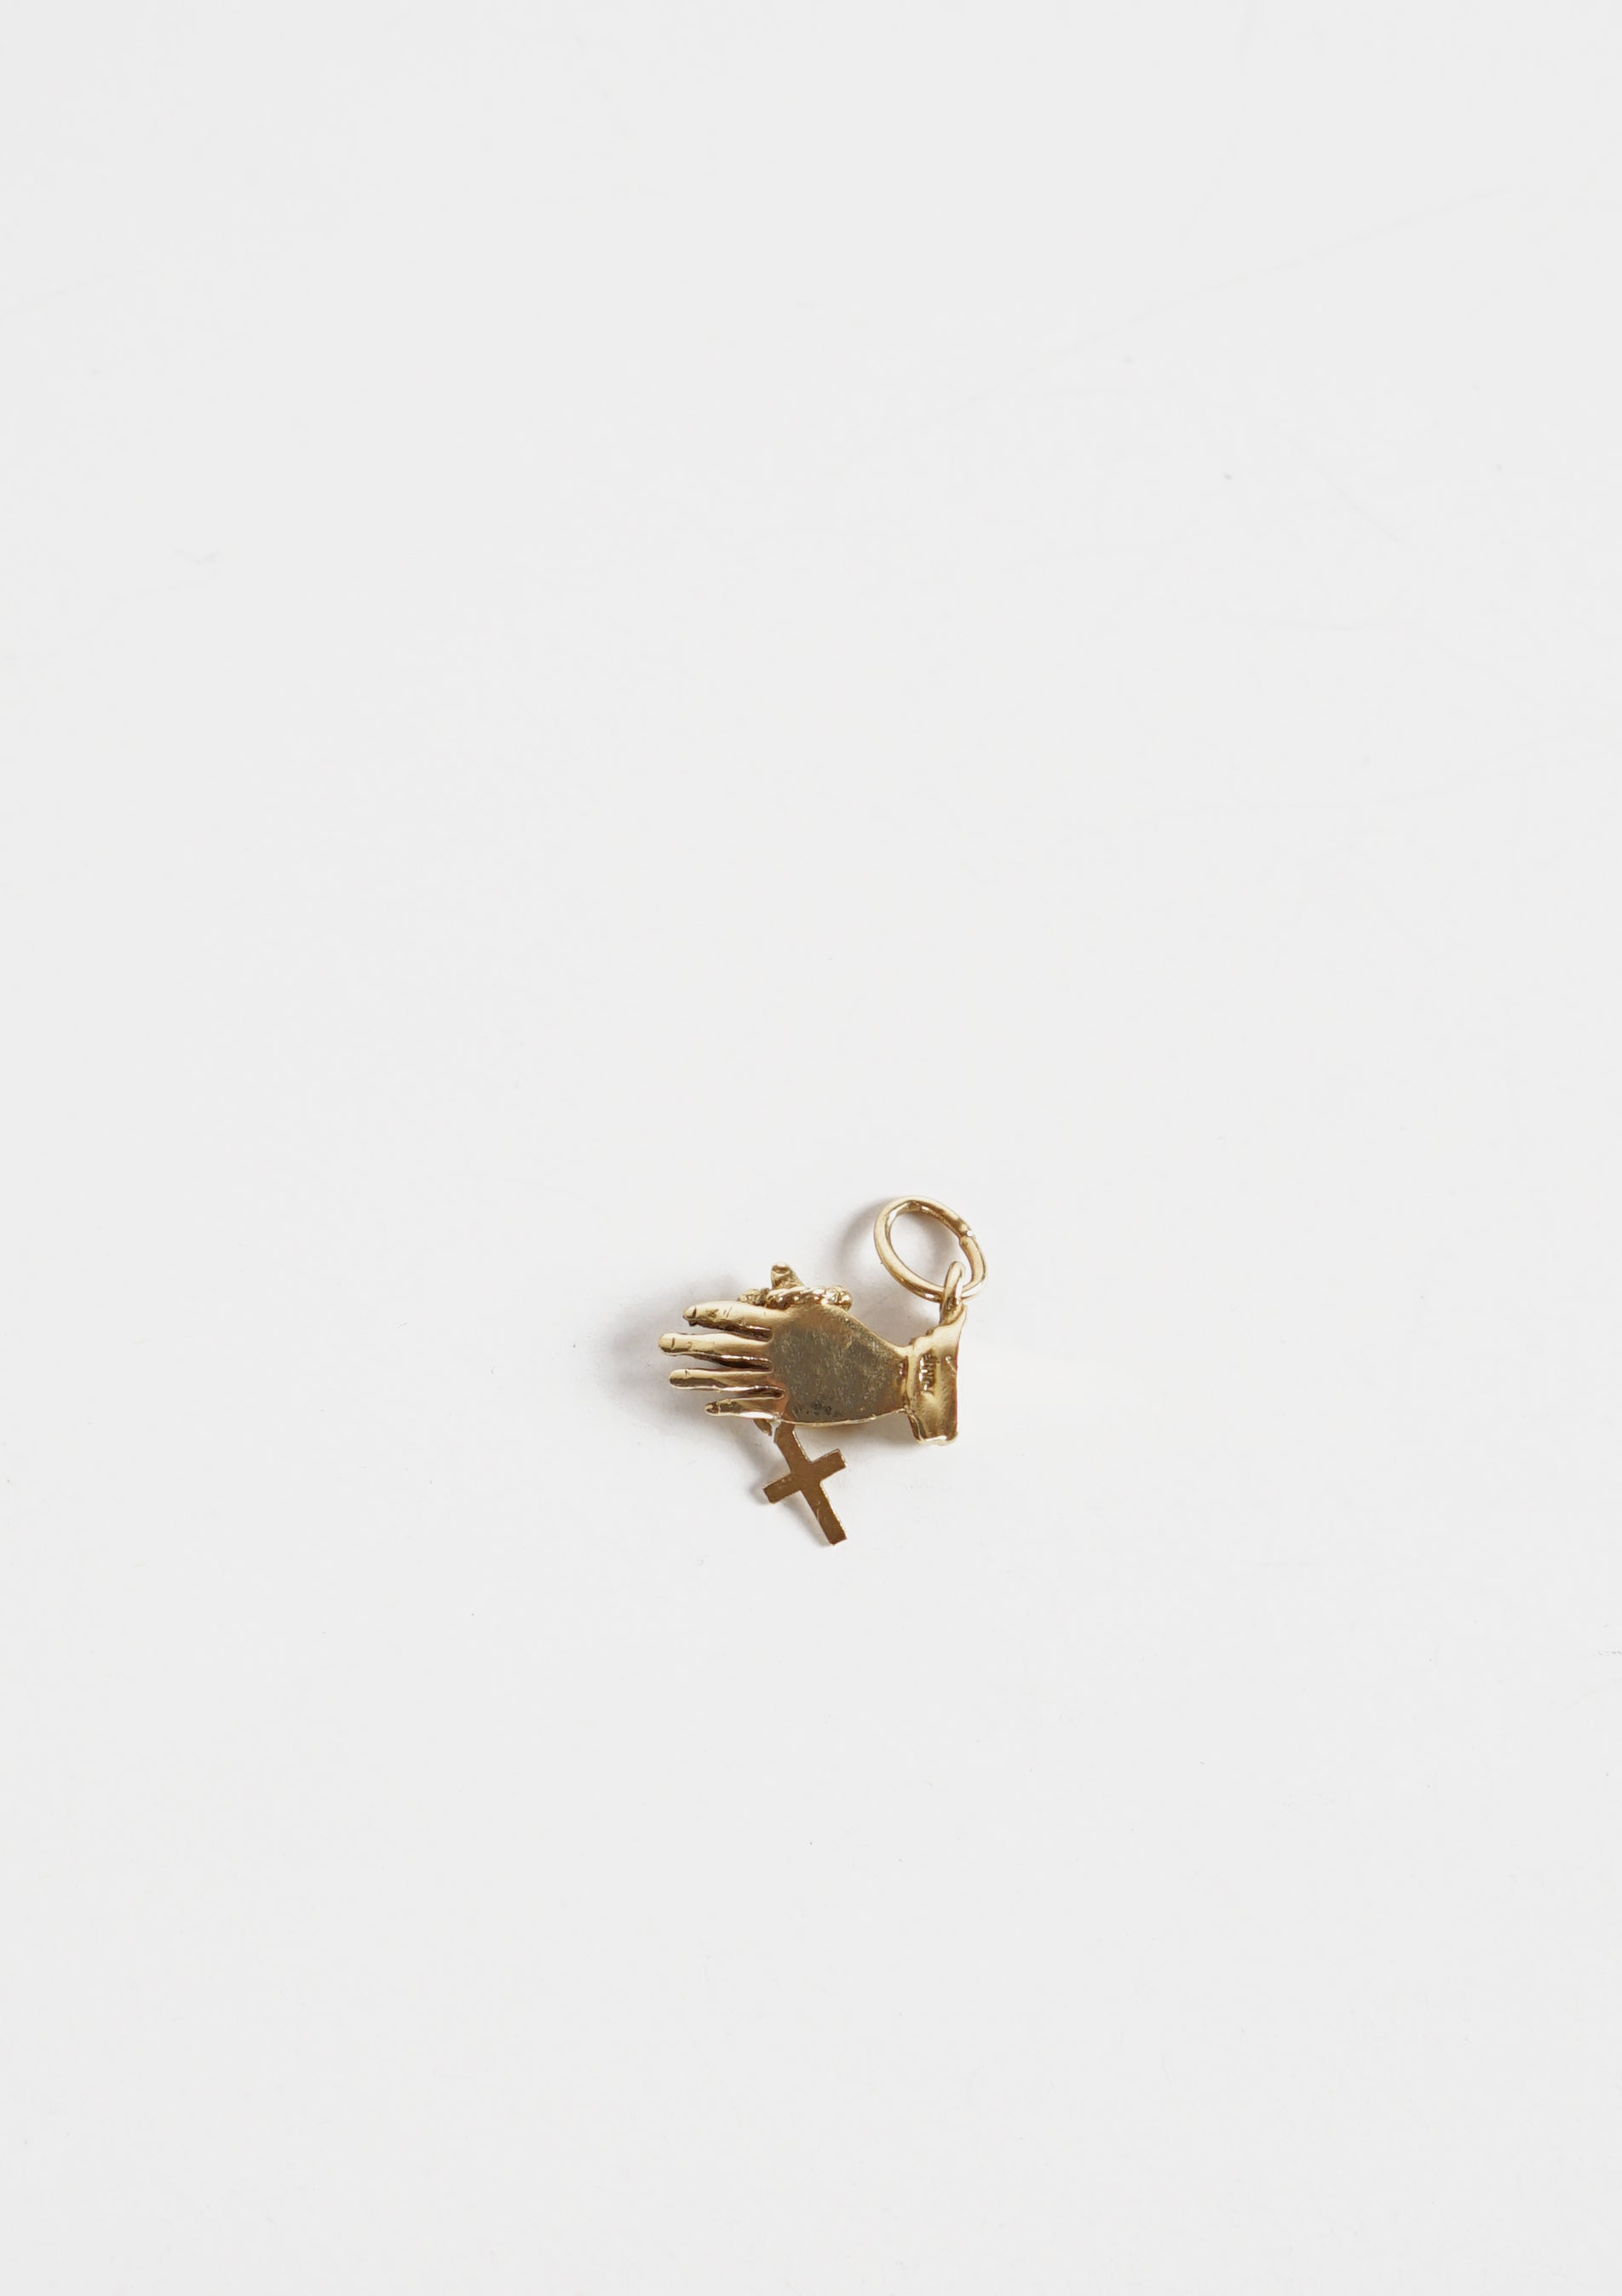 <strong>VINTAGE</strong></br>14k Gold Charm